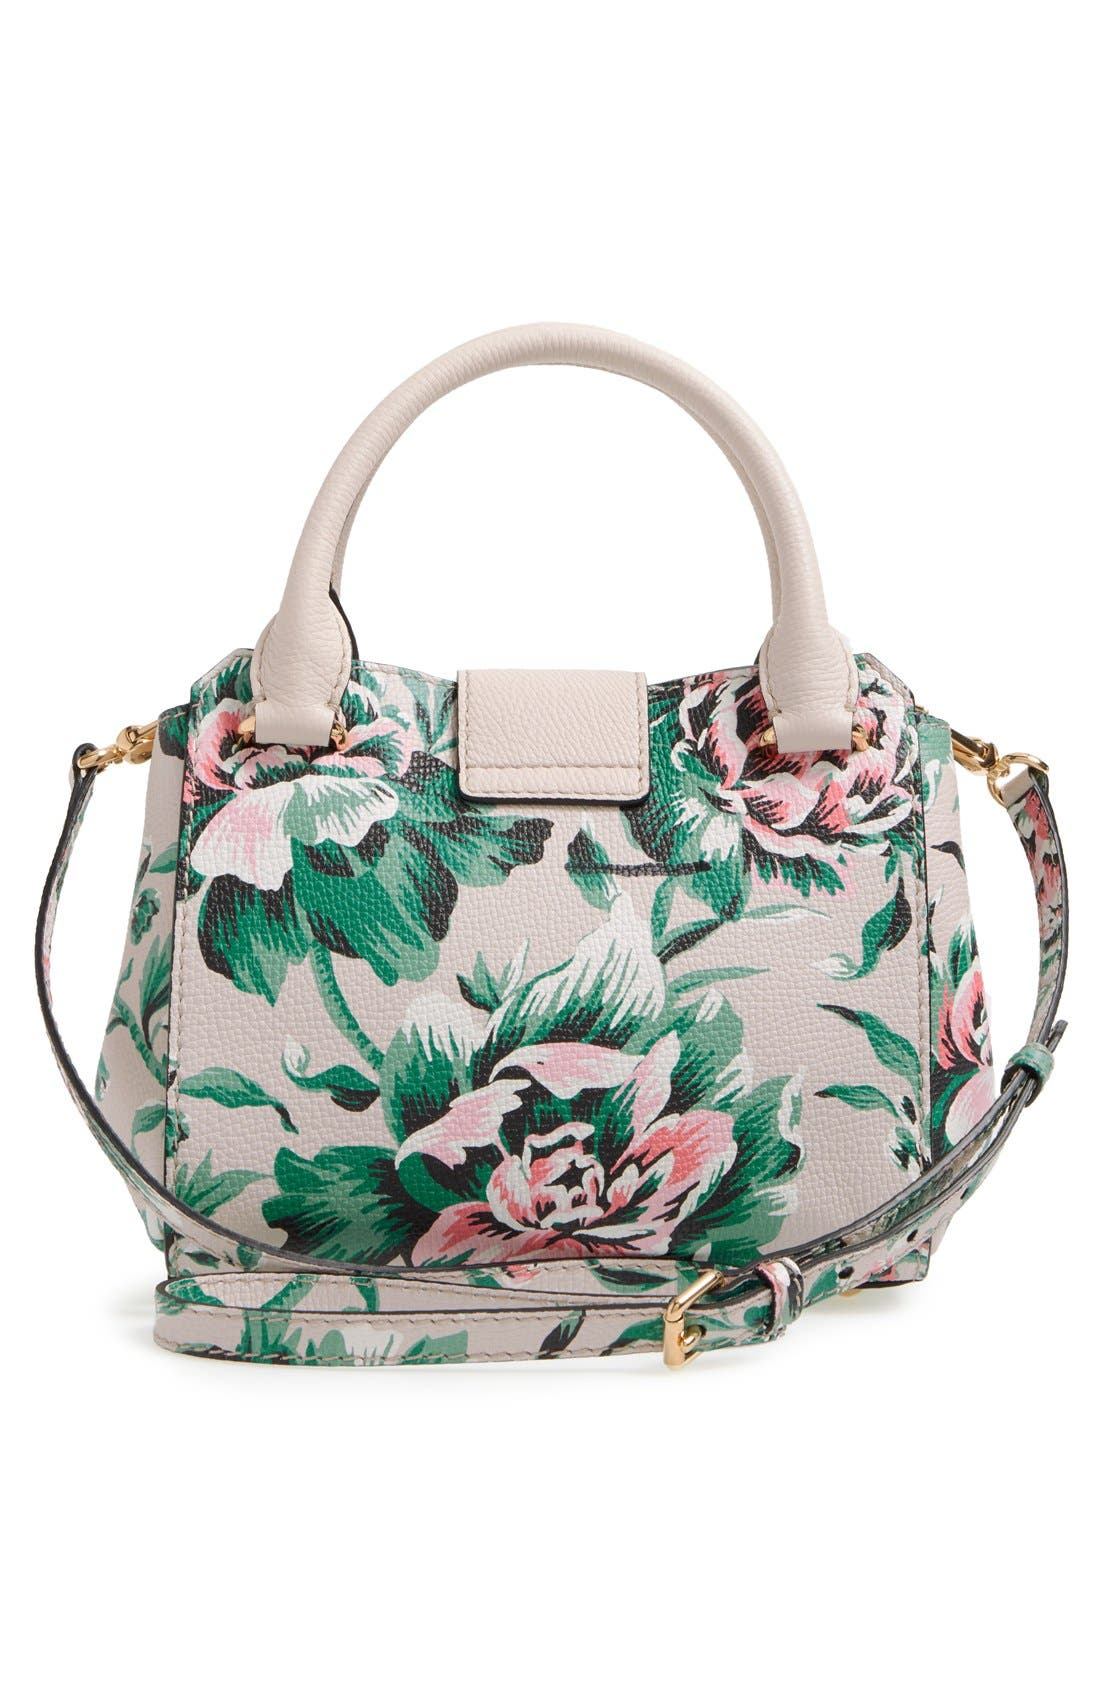 Small Buckle Floral Calfskin Leather Satchel,                             Alternate thumbnail 6, color,                             321